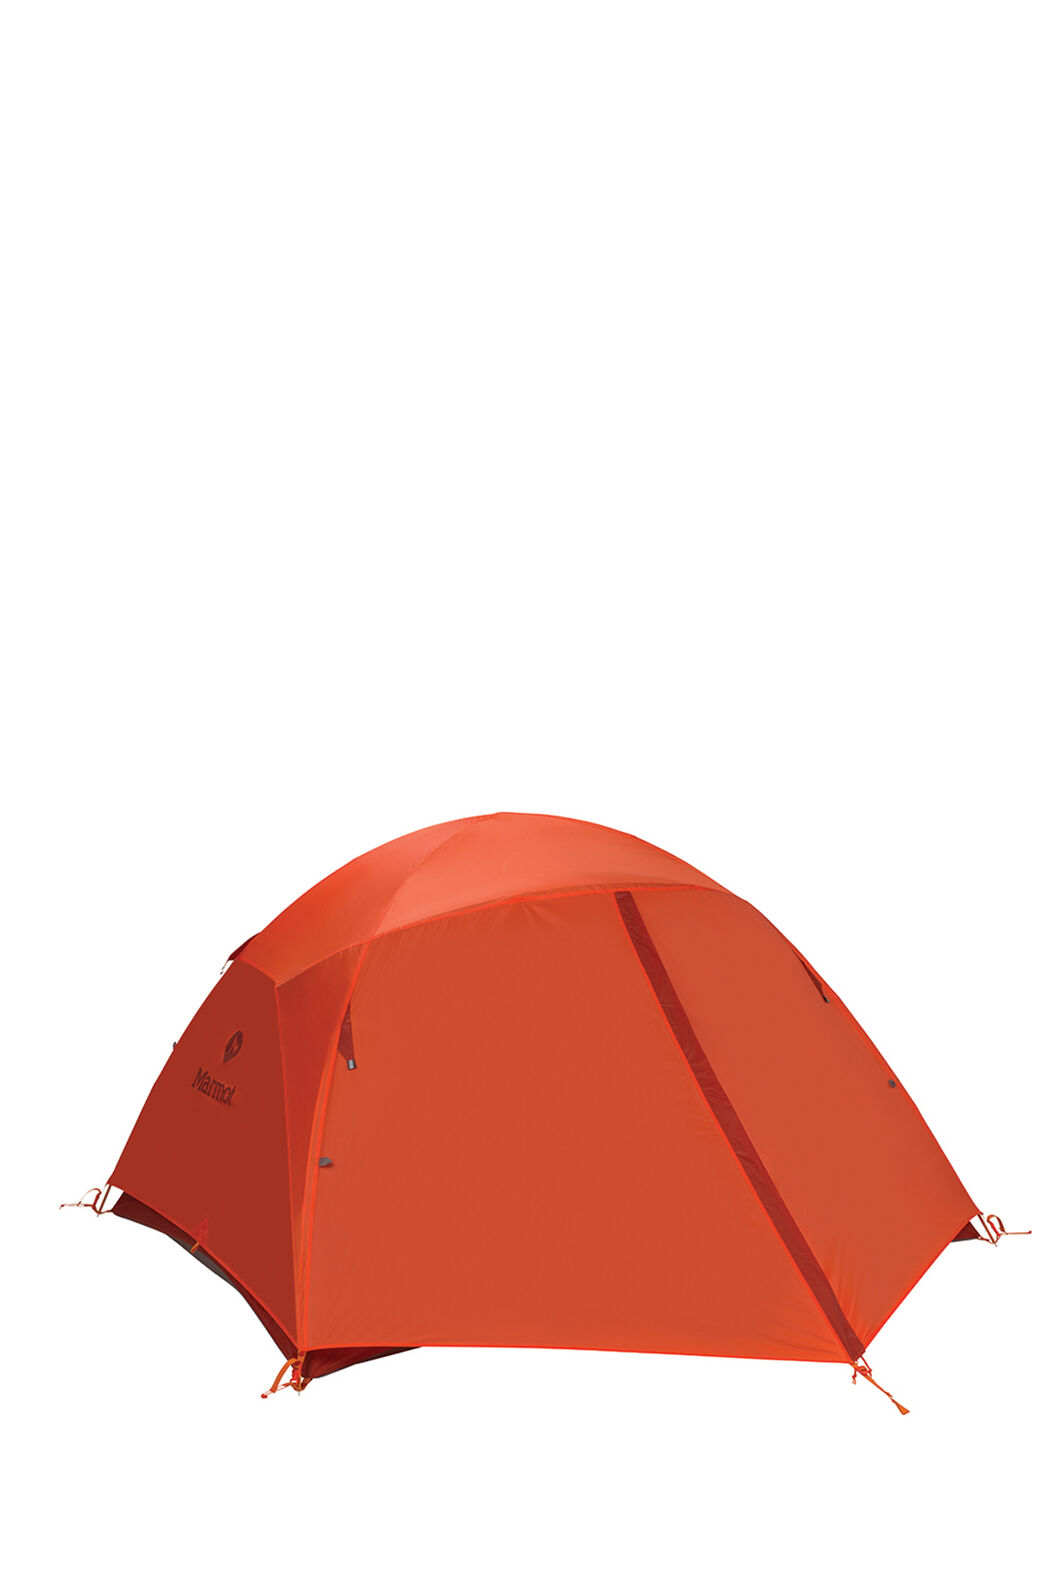 Marmot Catalyst 3P Hiking Tent, None, hi-res